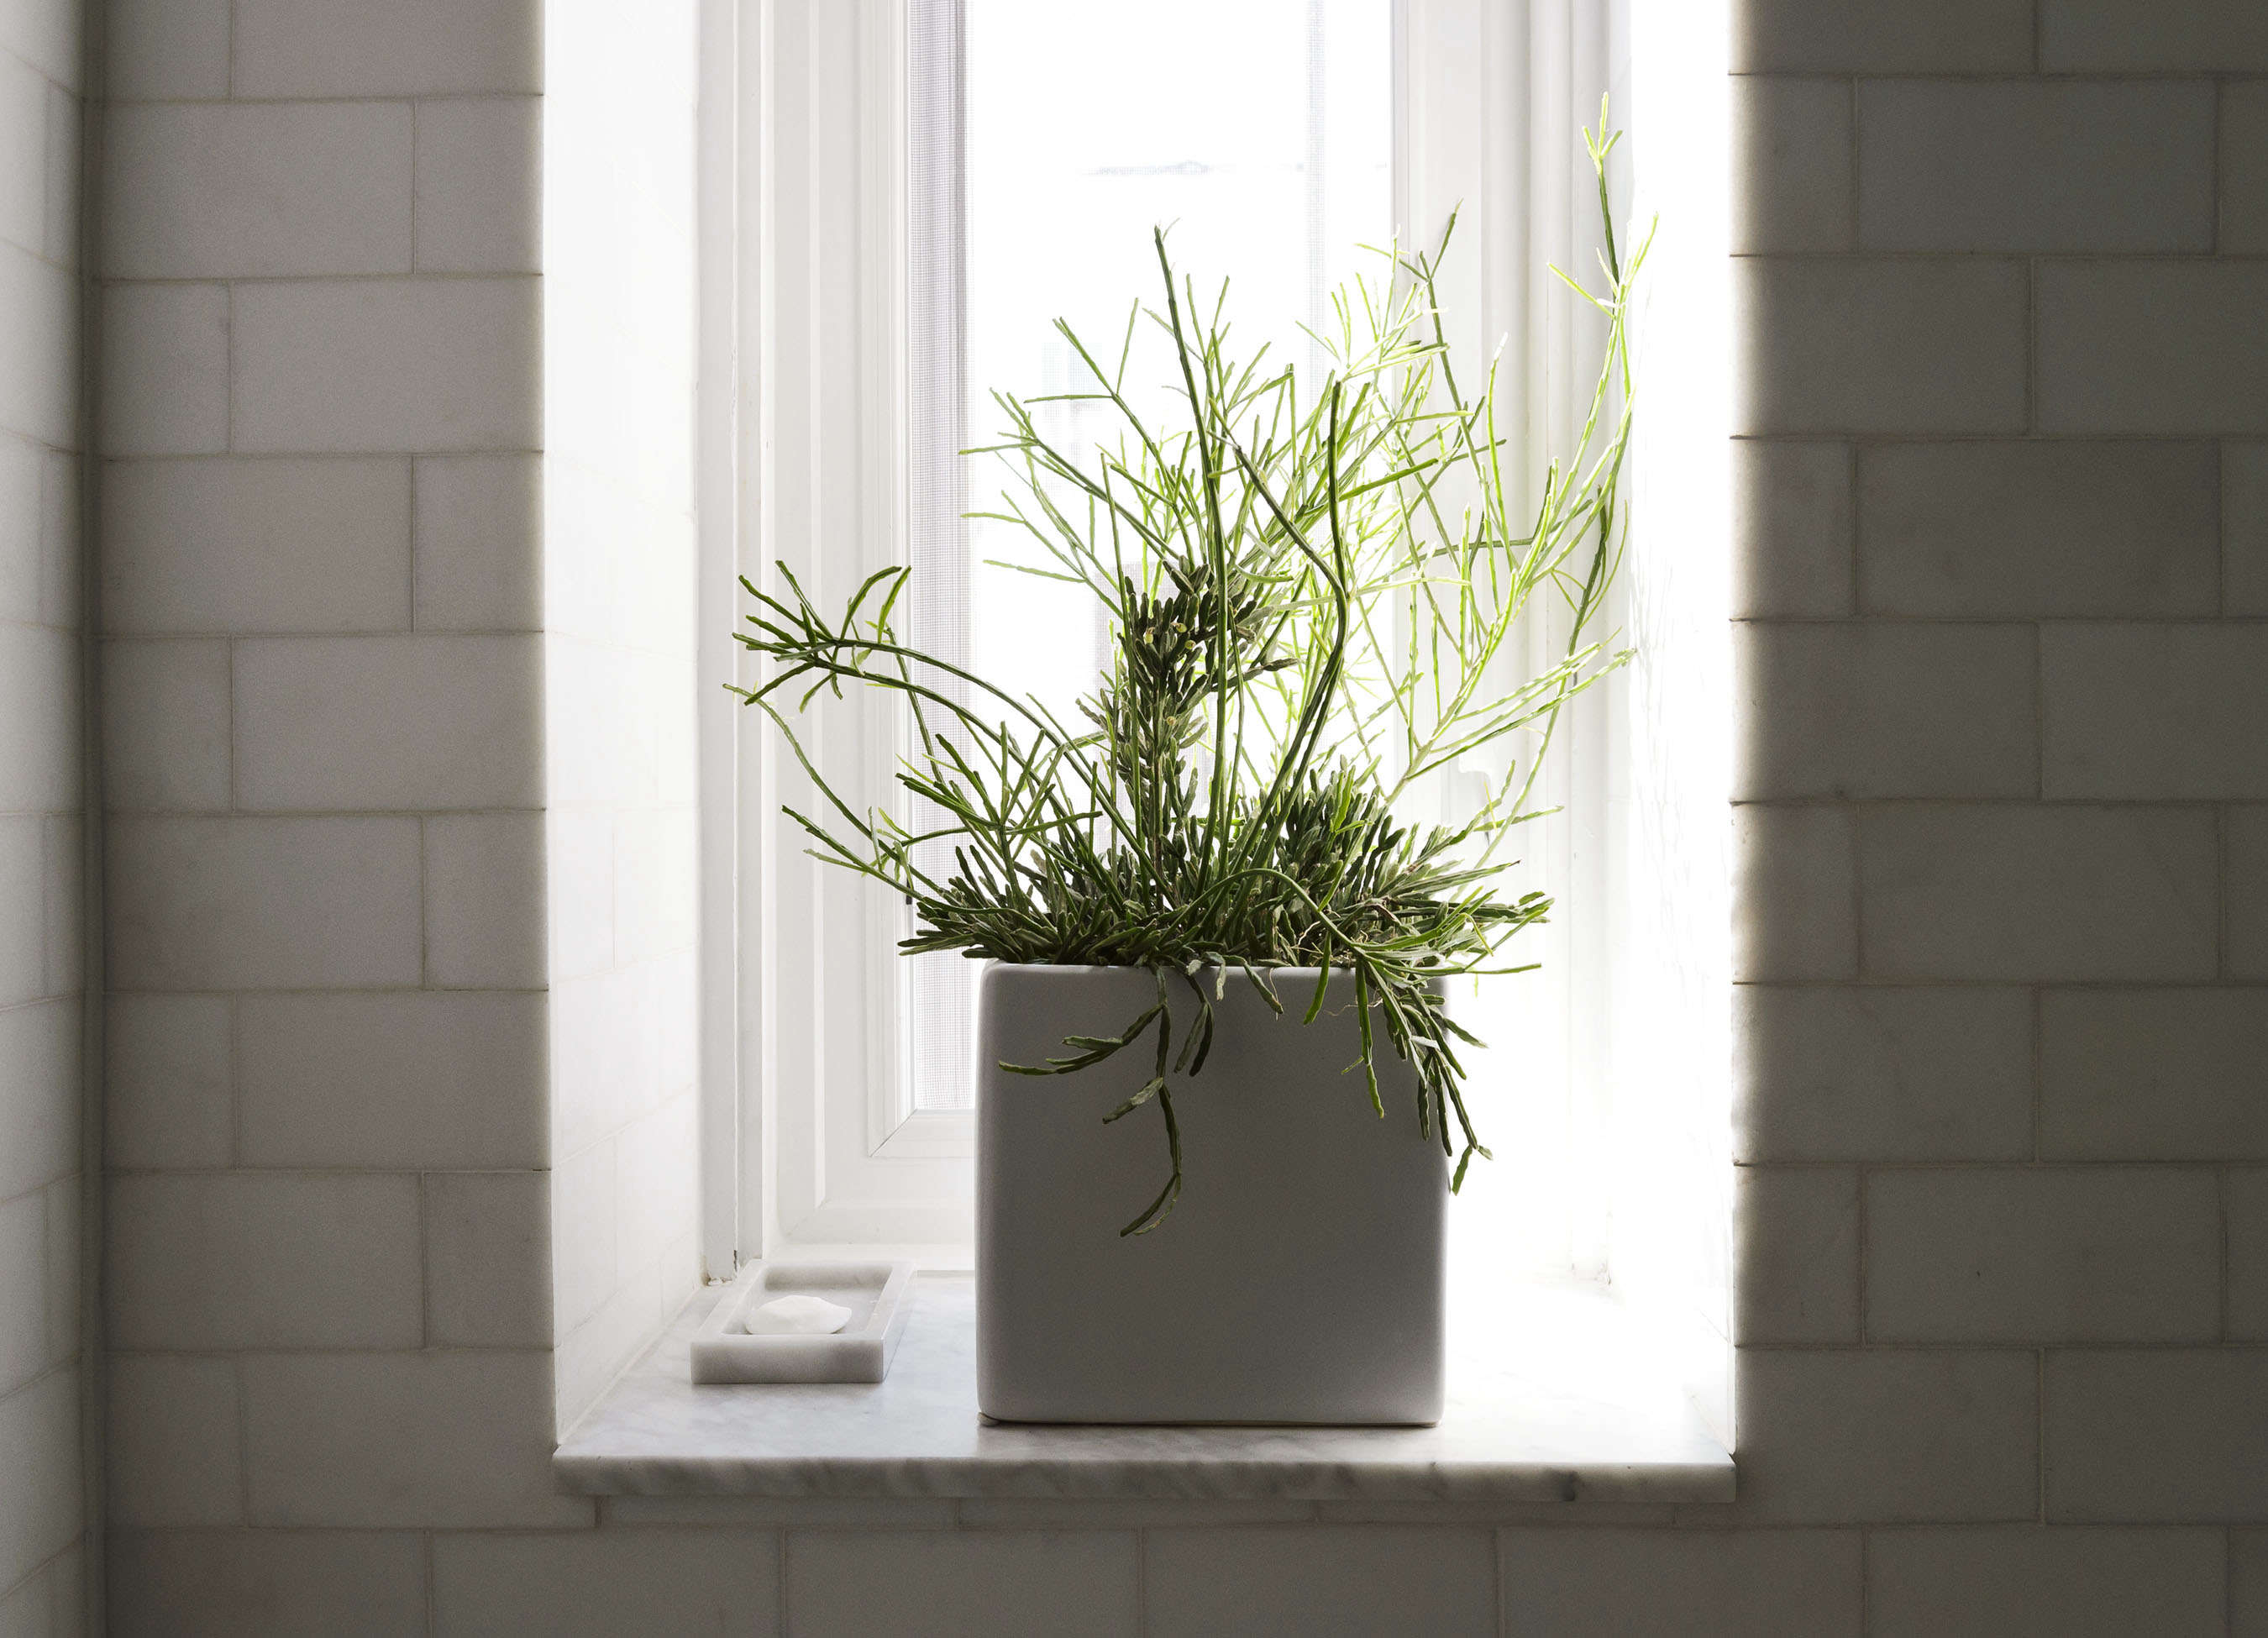 Plant on bathroom windowsill in Jacqueline-Schmidt and David Friedlander's 675-square-foot Brooklyn quarters, Matthew-Williams-photo | Remodelista